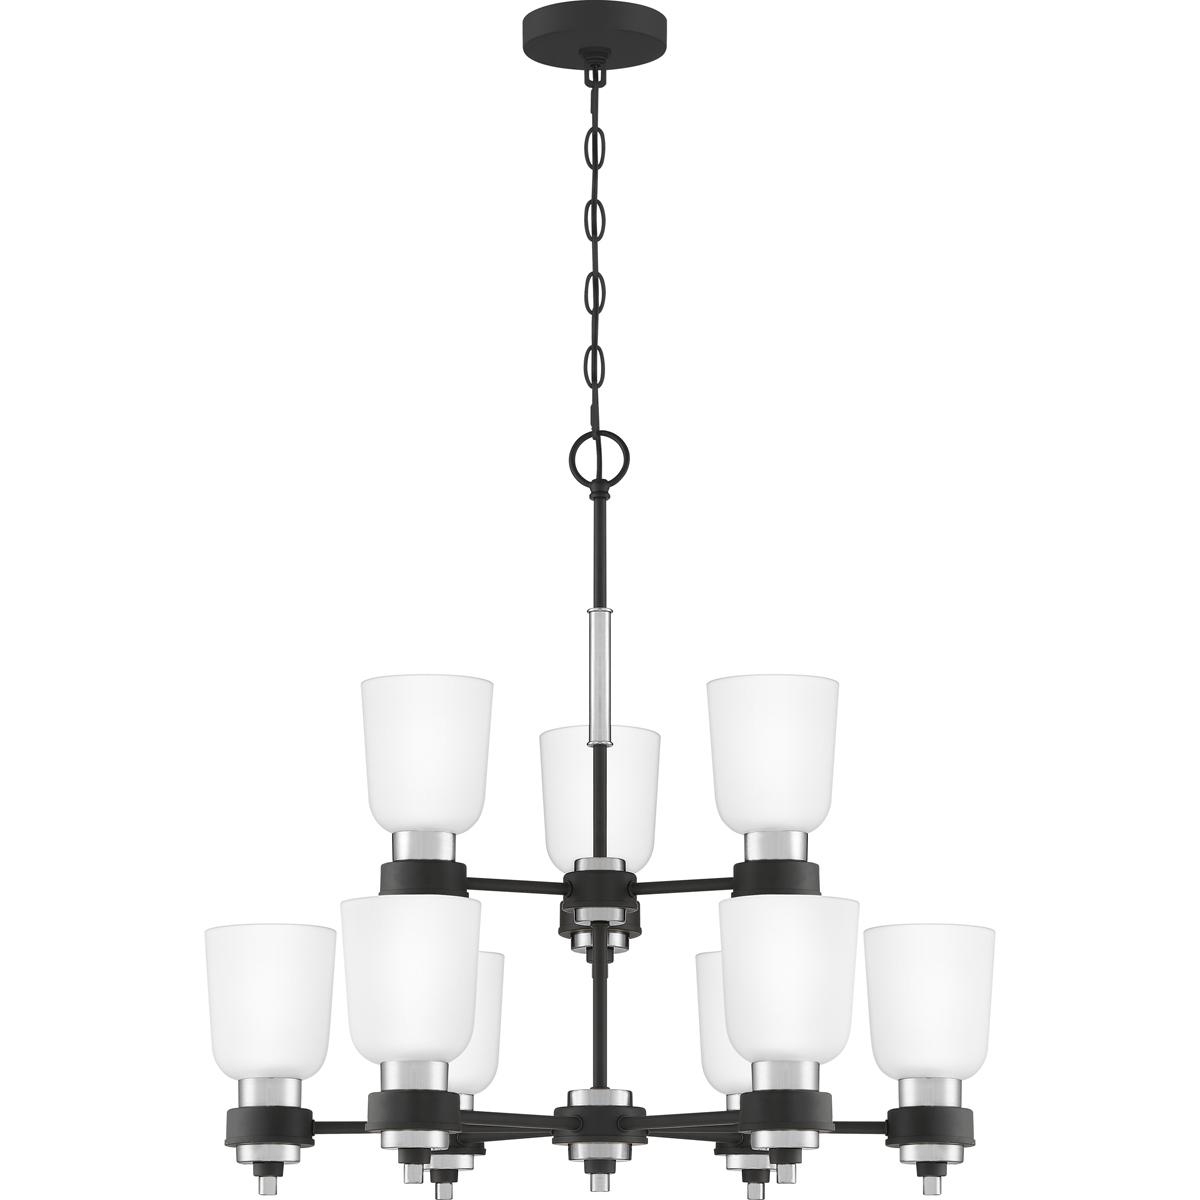 Primary image for Conrad 9-Light Chandelier in Brushed Nickel